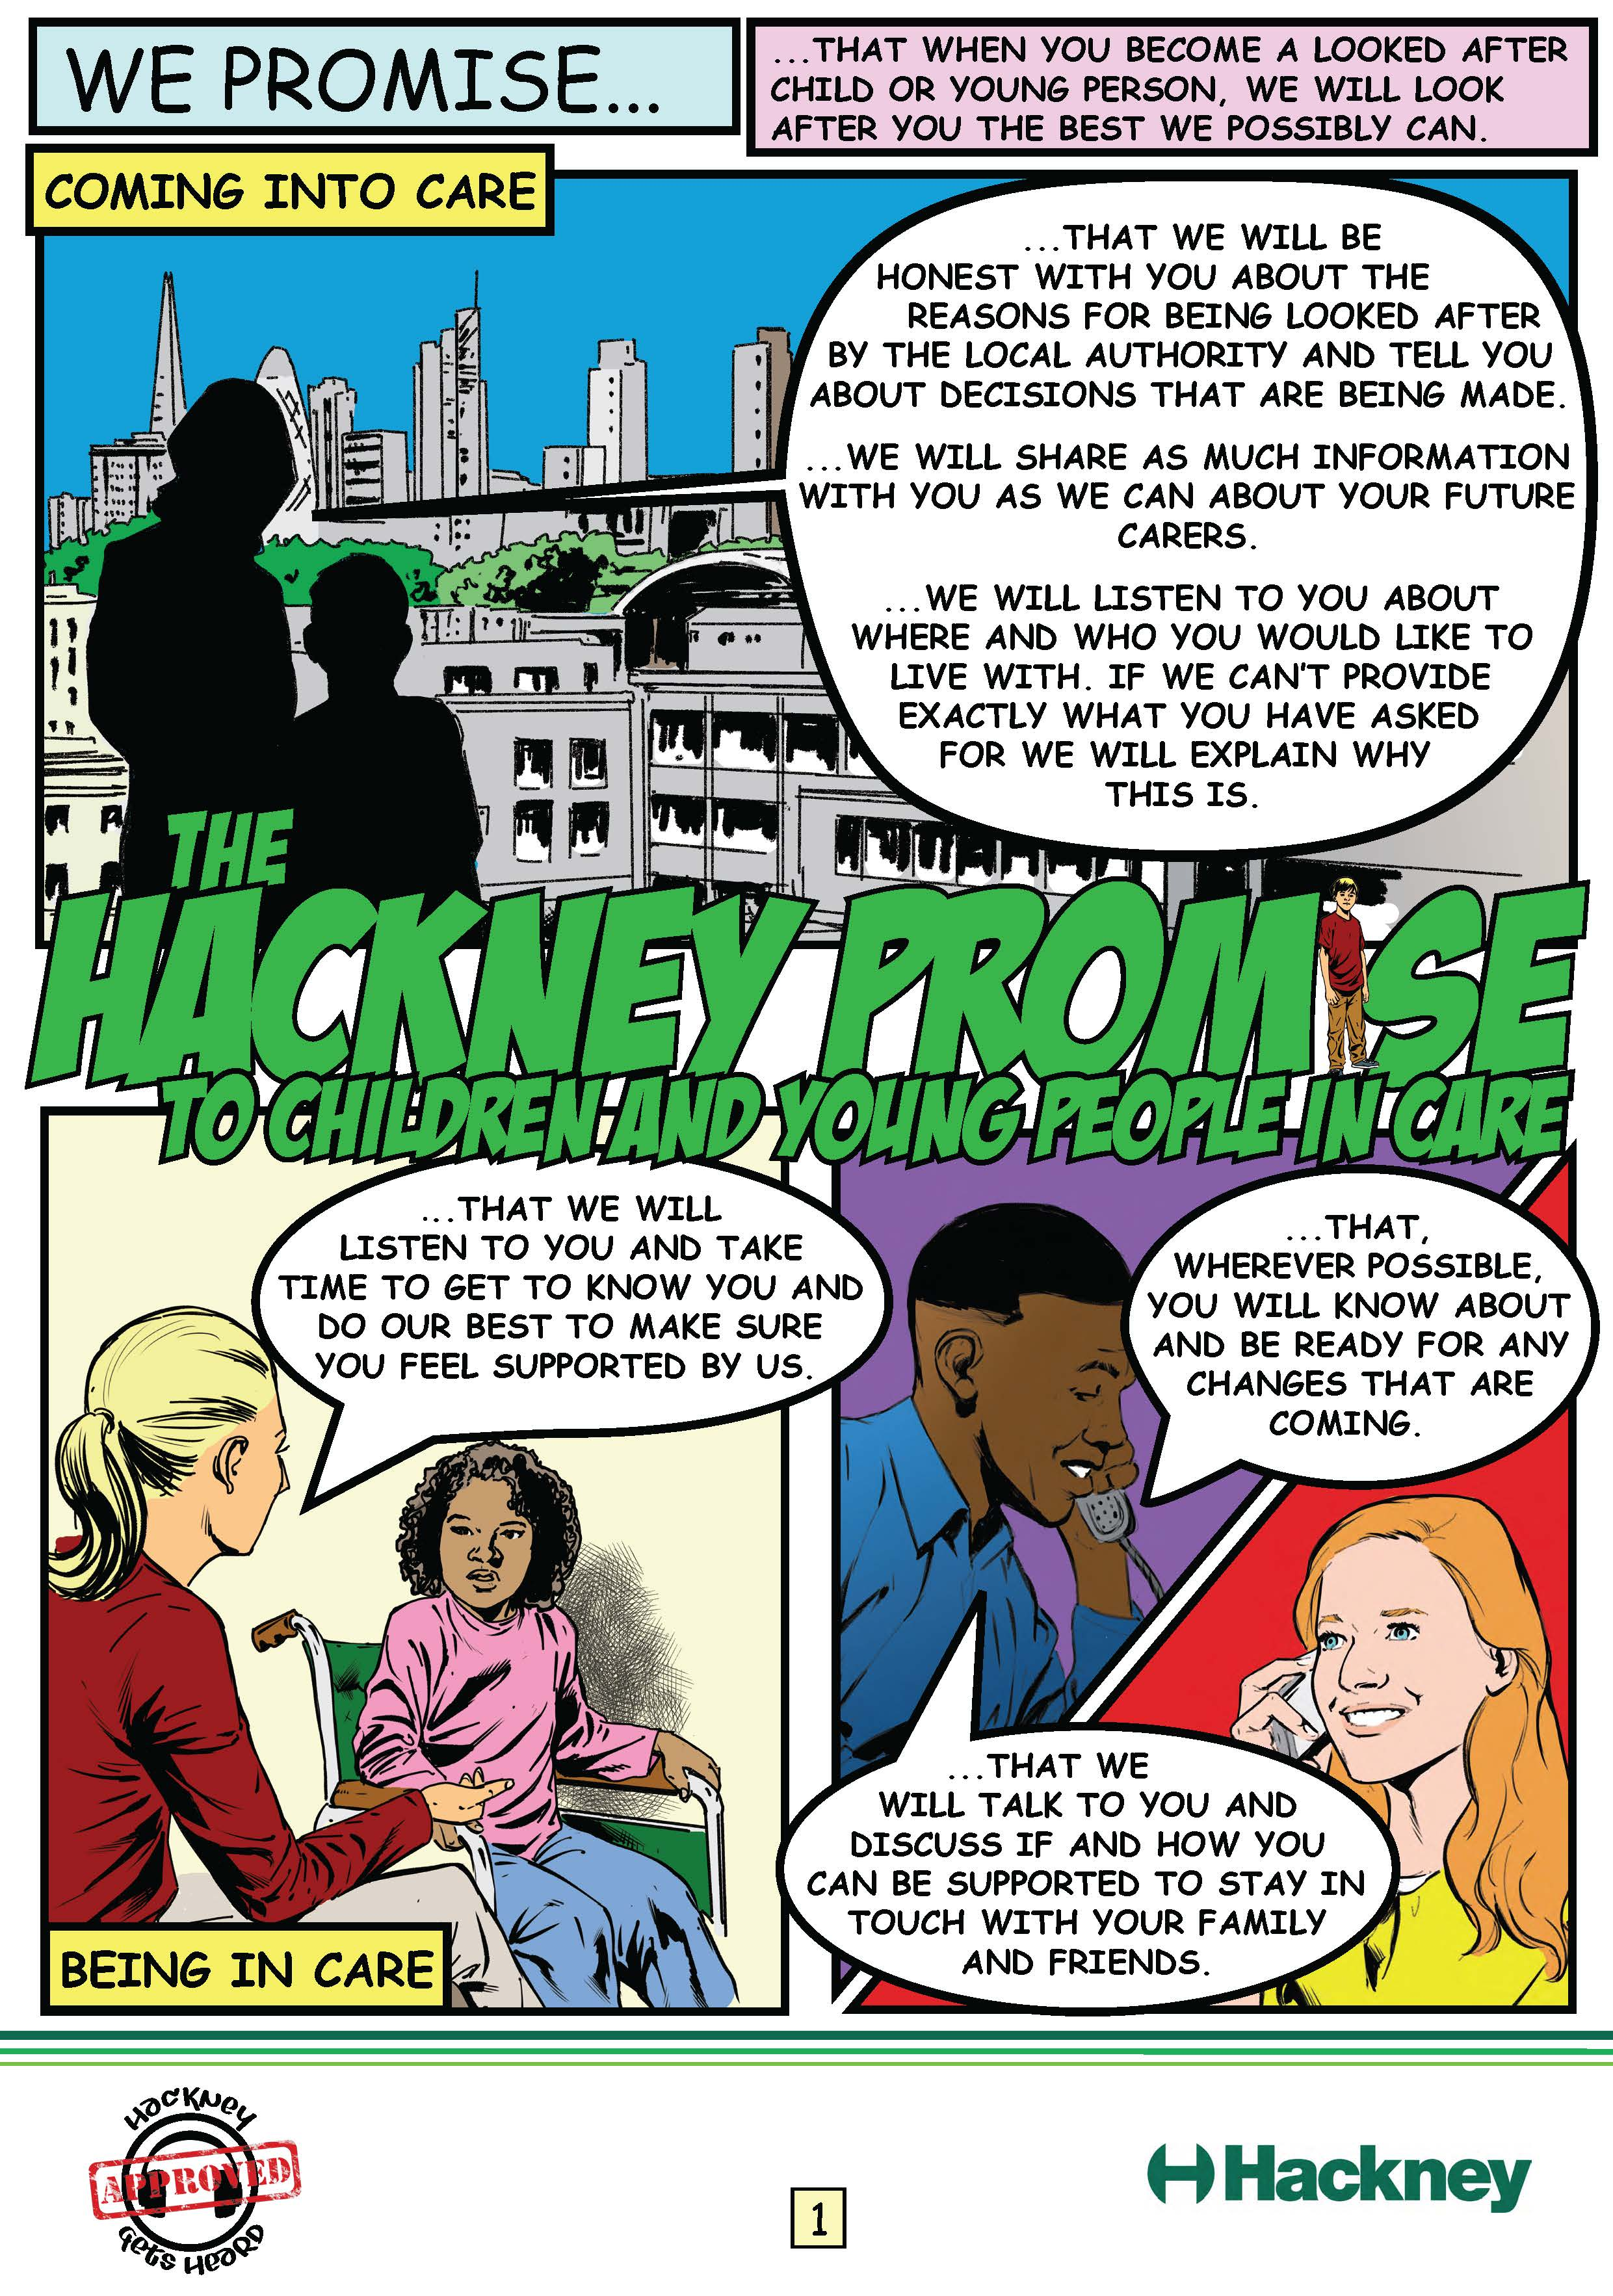 Hackney Promise page 1